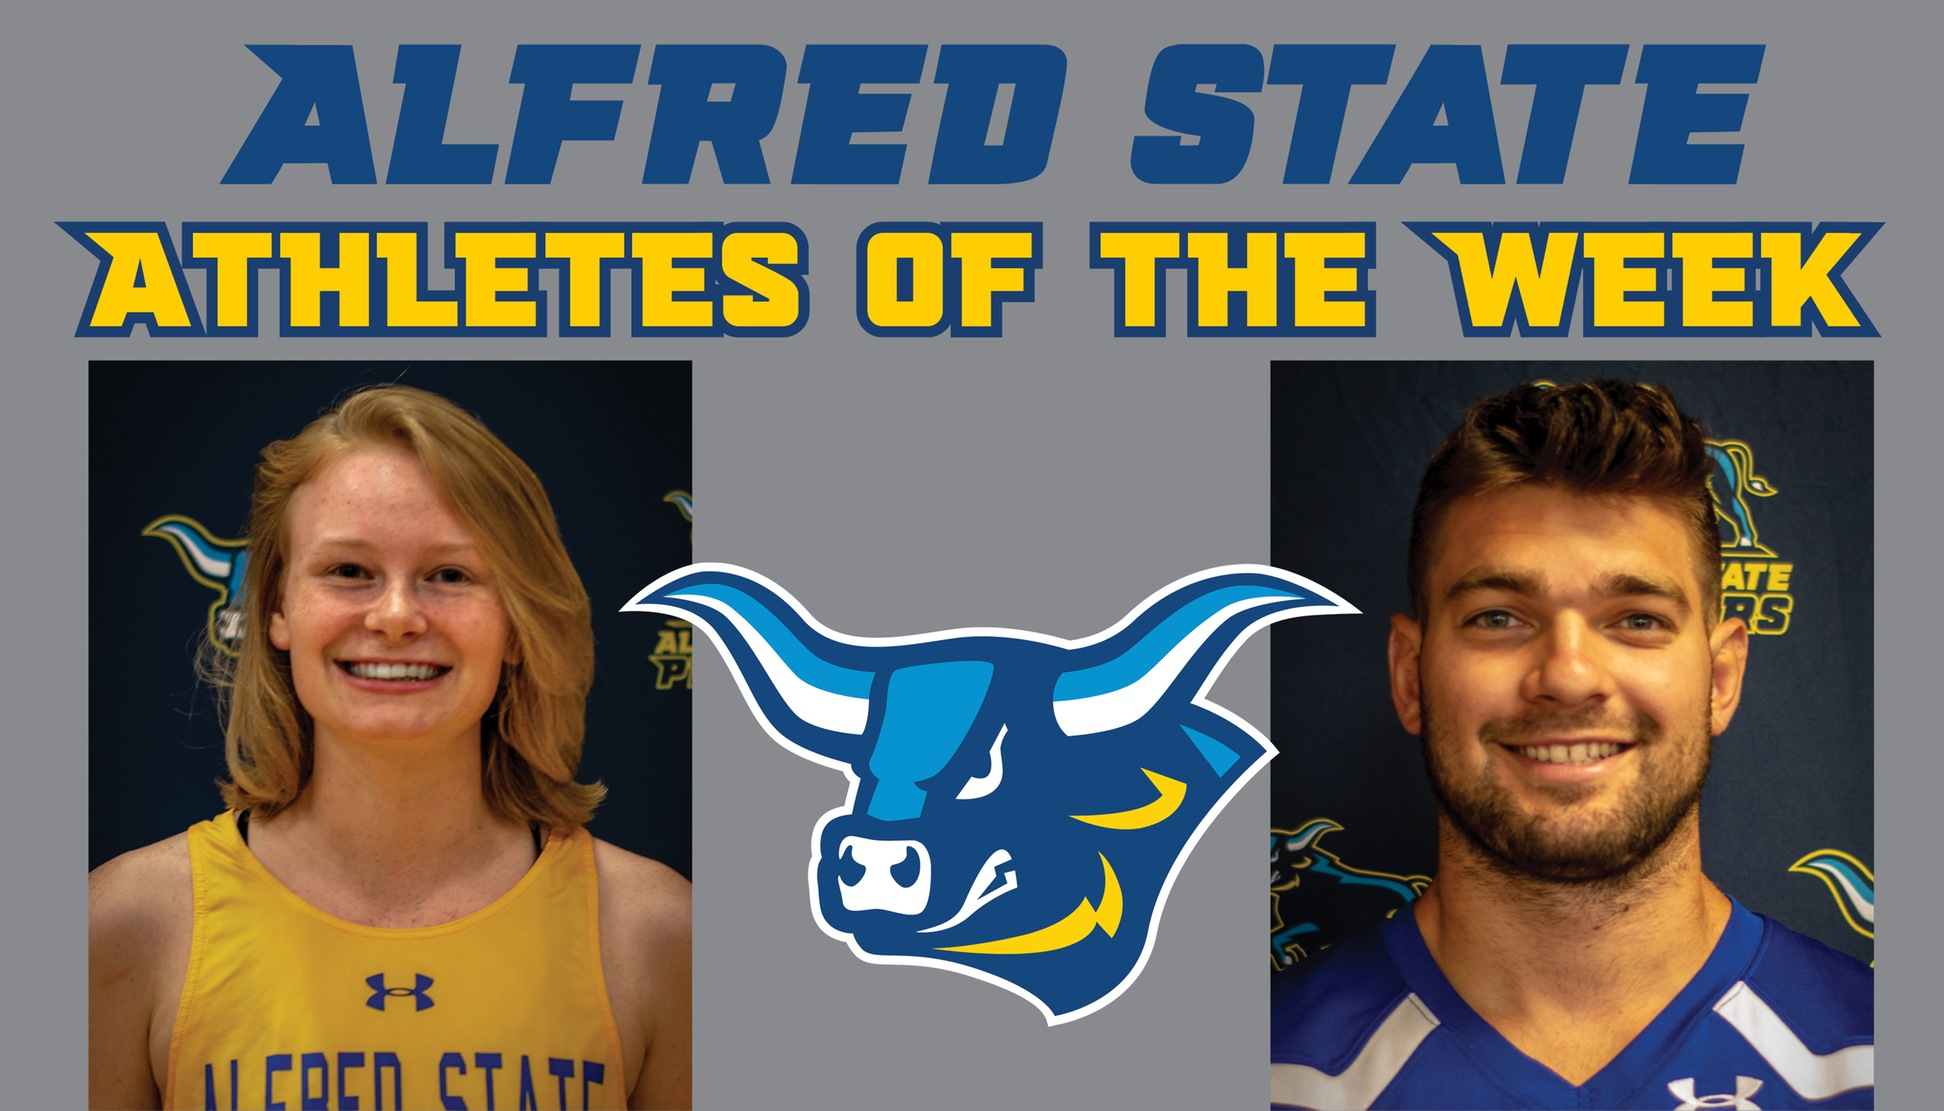 Russell and Lauretti Named Athletes of the Week